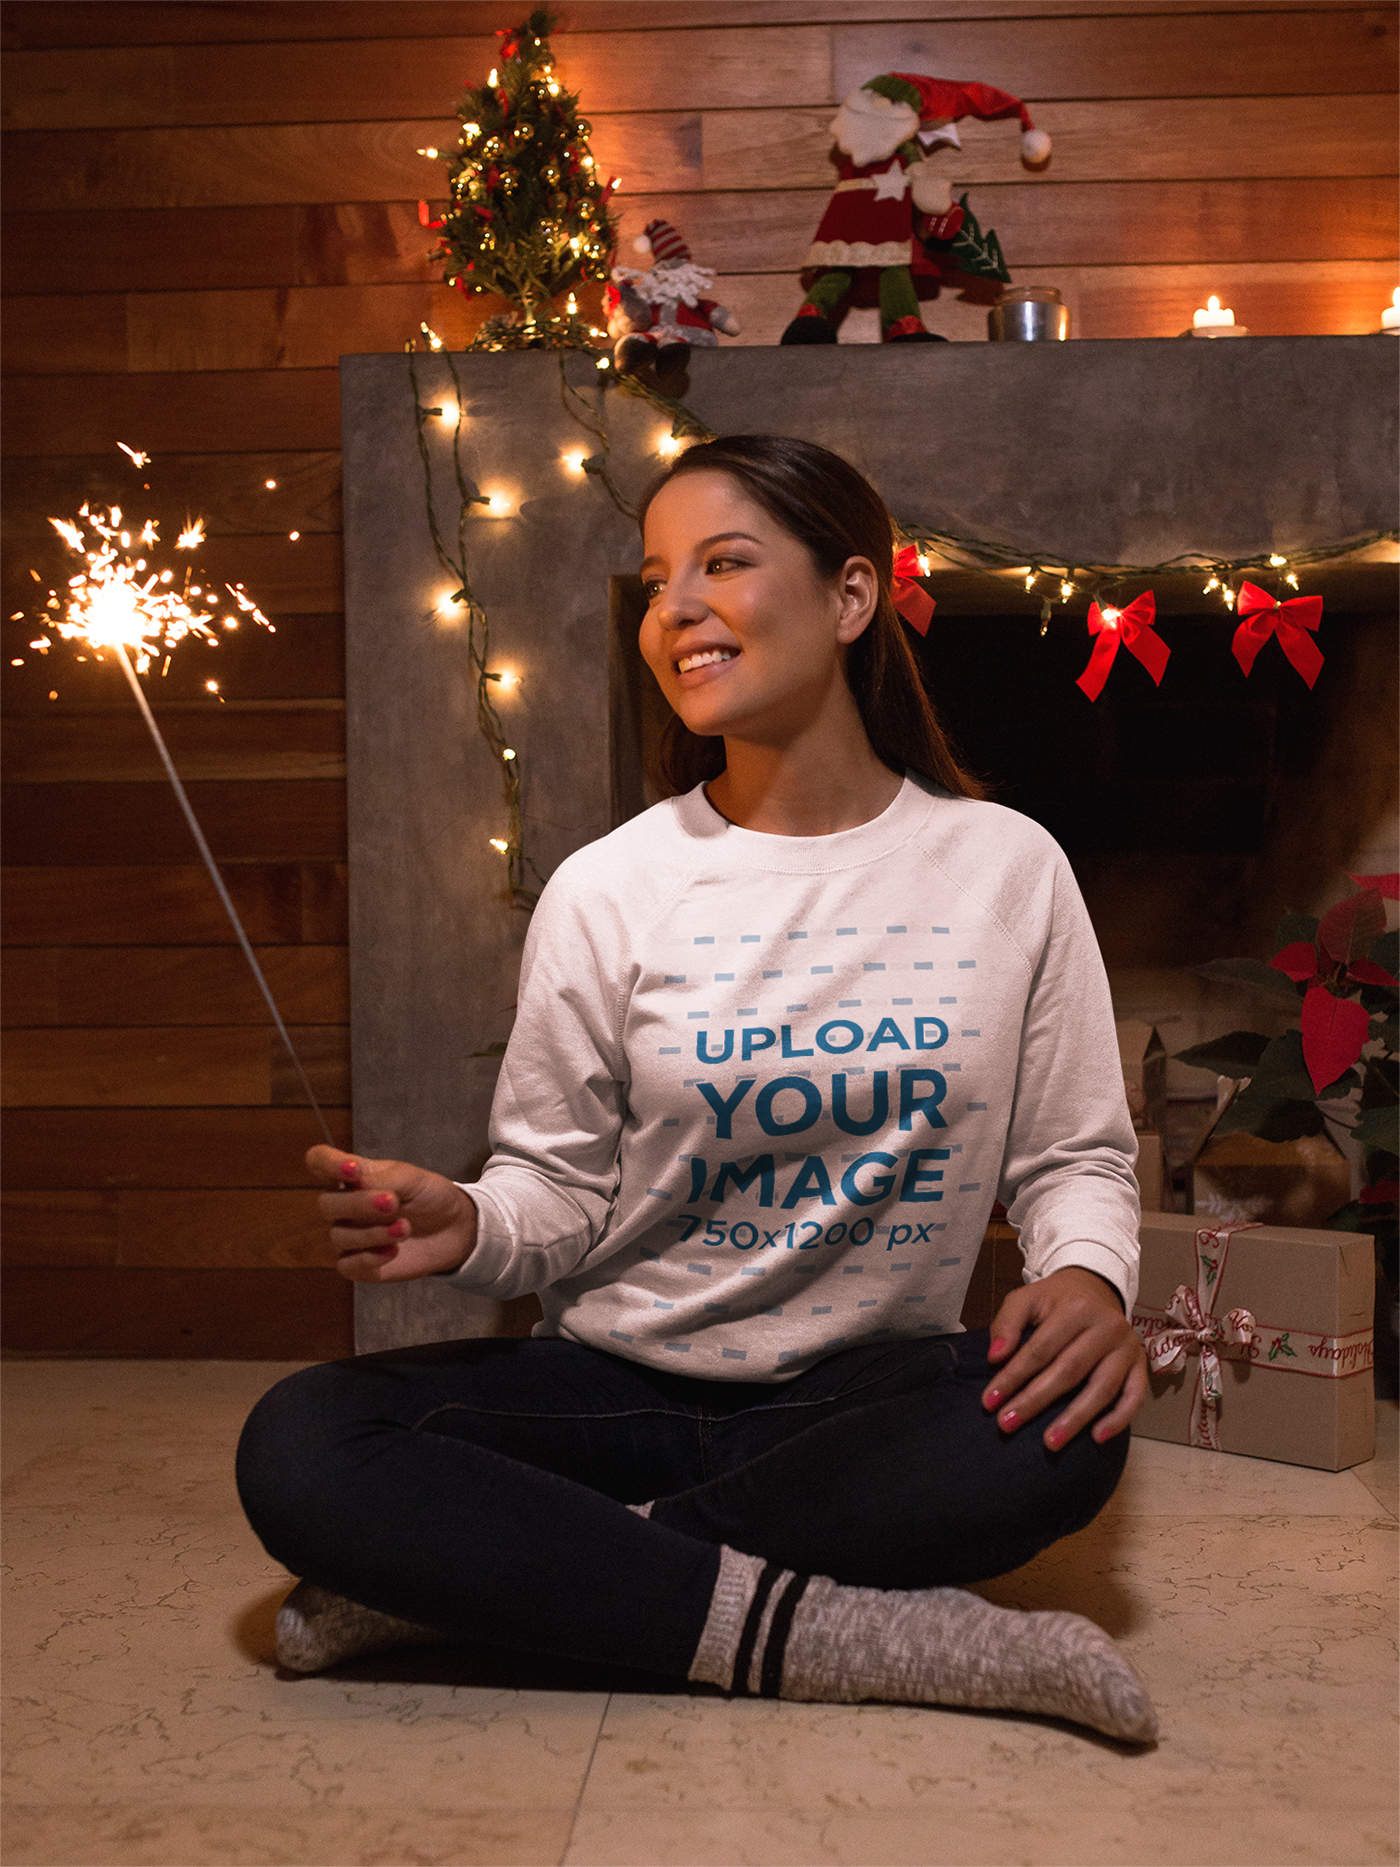 Girl Wearing White Sweatshirt Celebrating Christmas